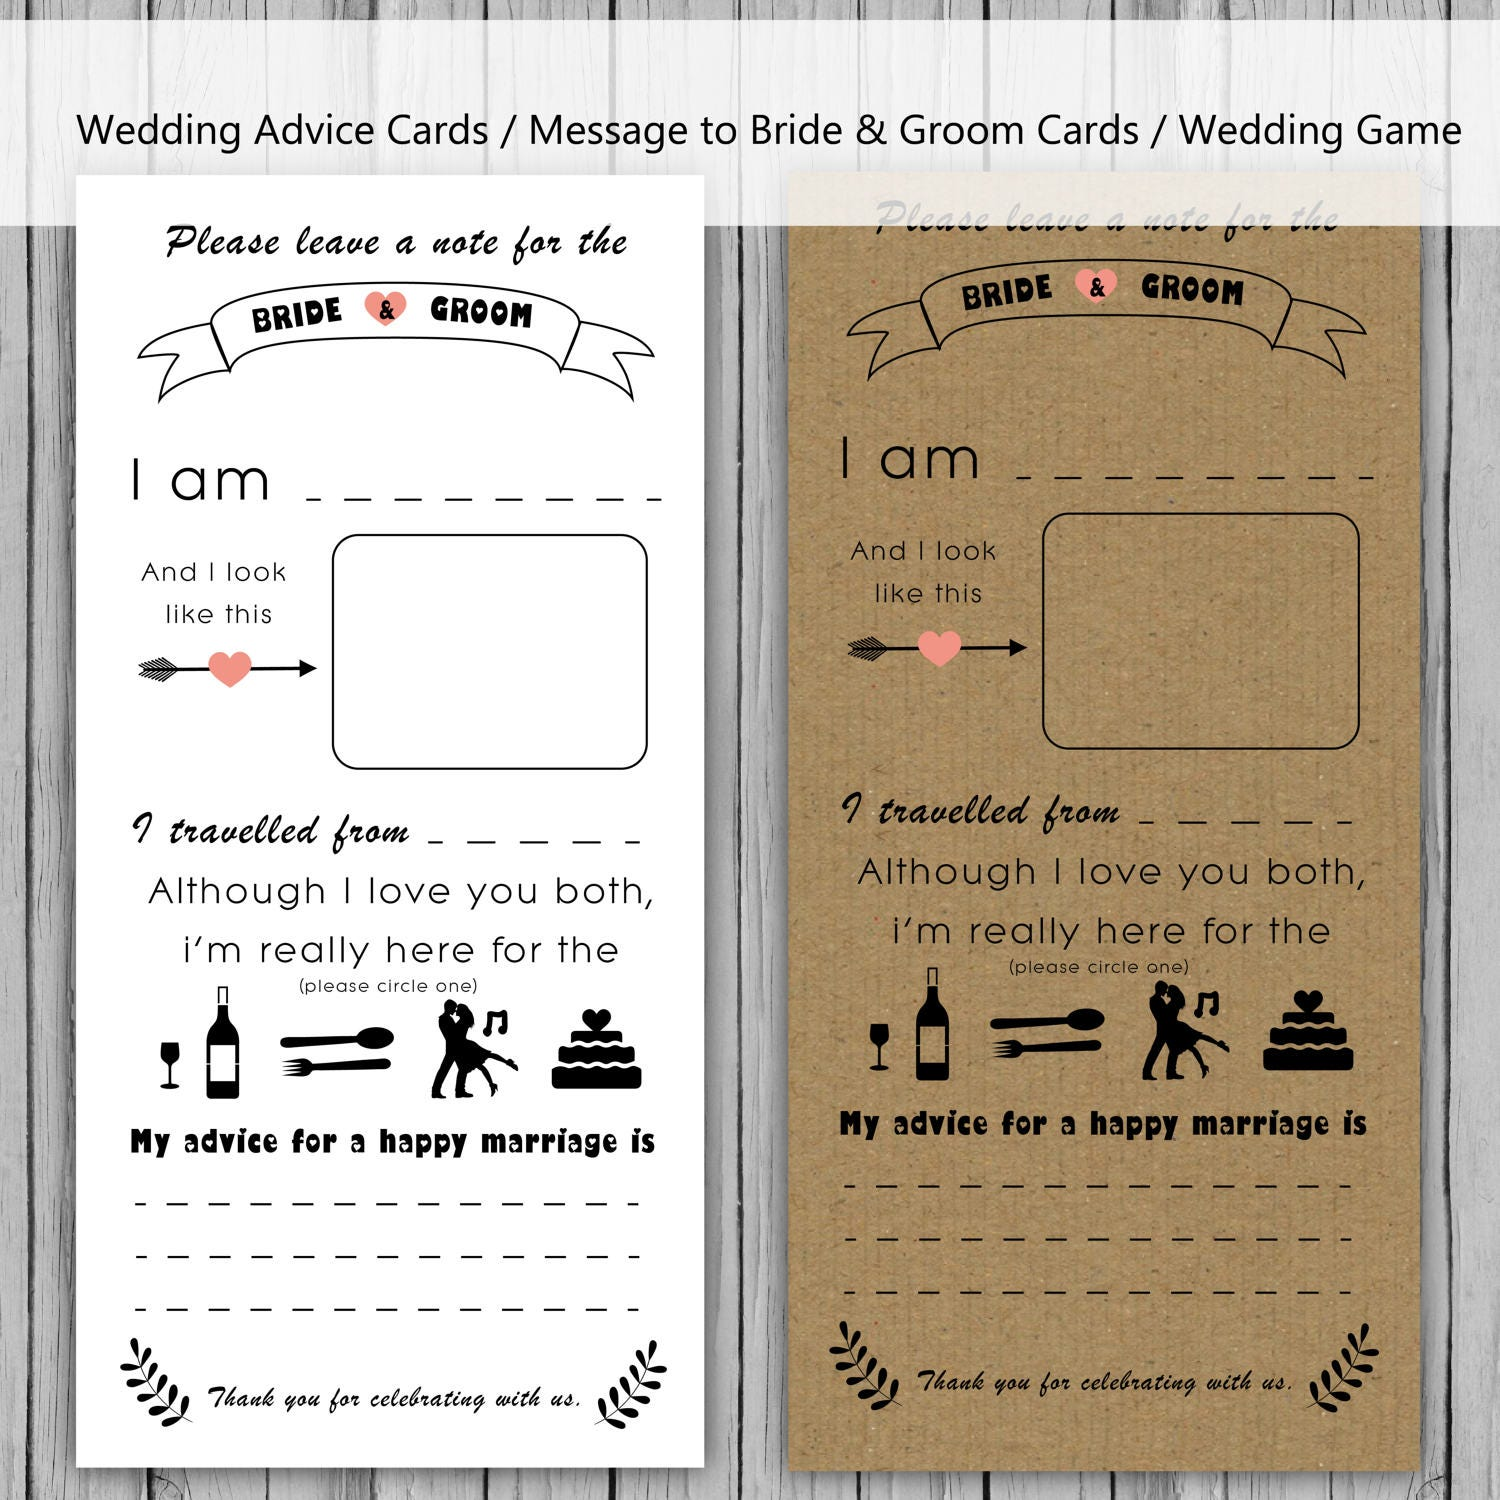 Multipack Wedding Advice Card Message To Bride And Groom